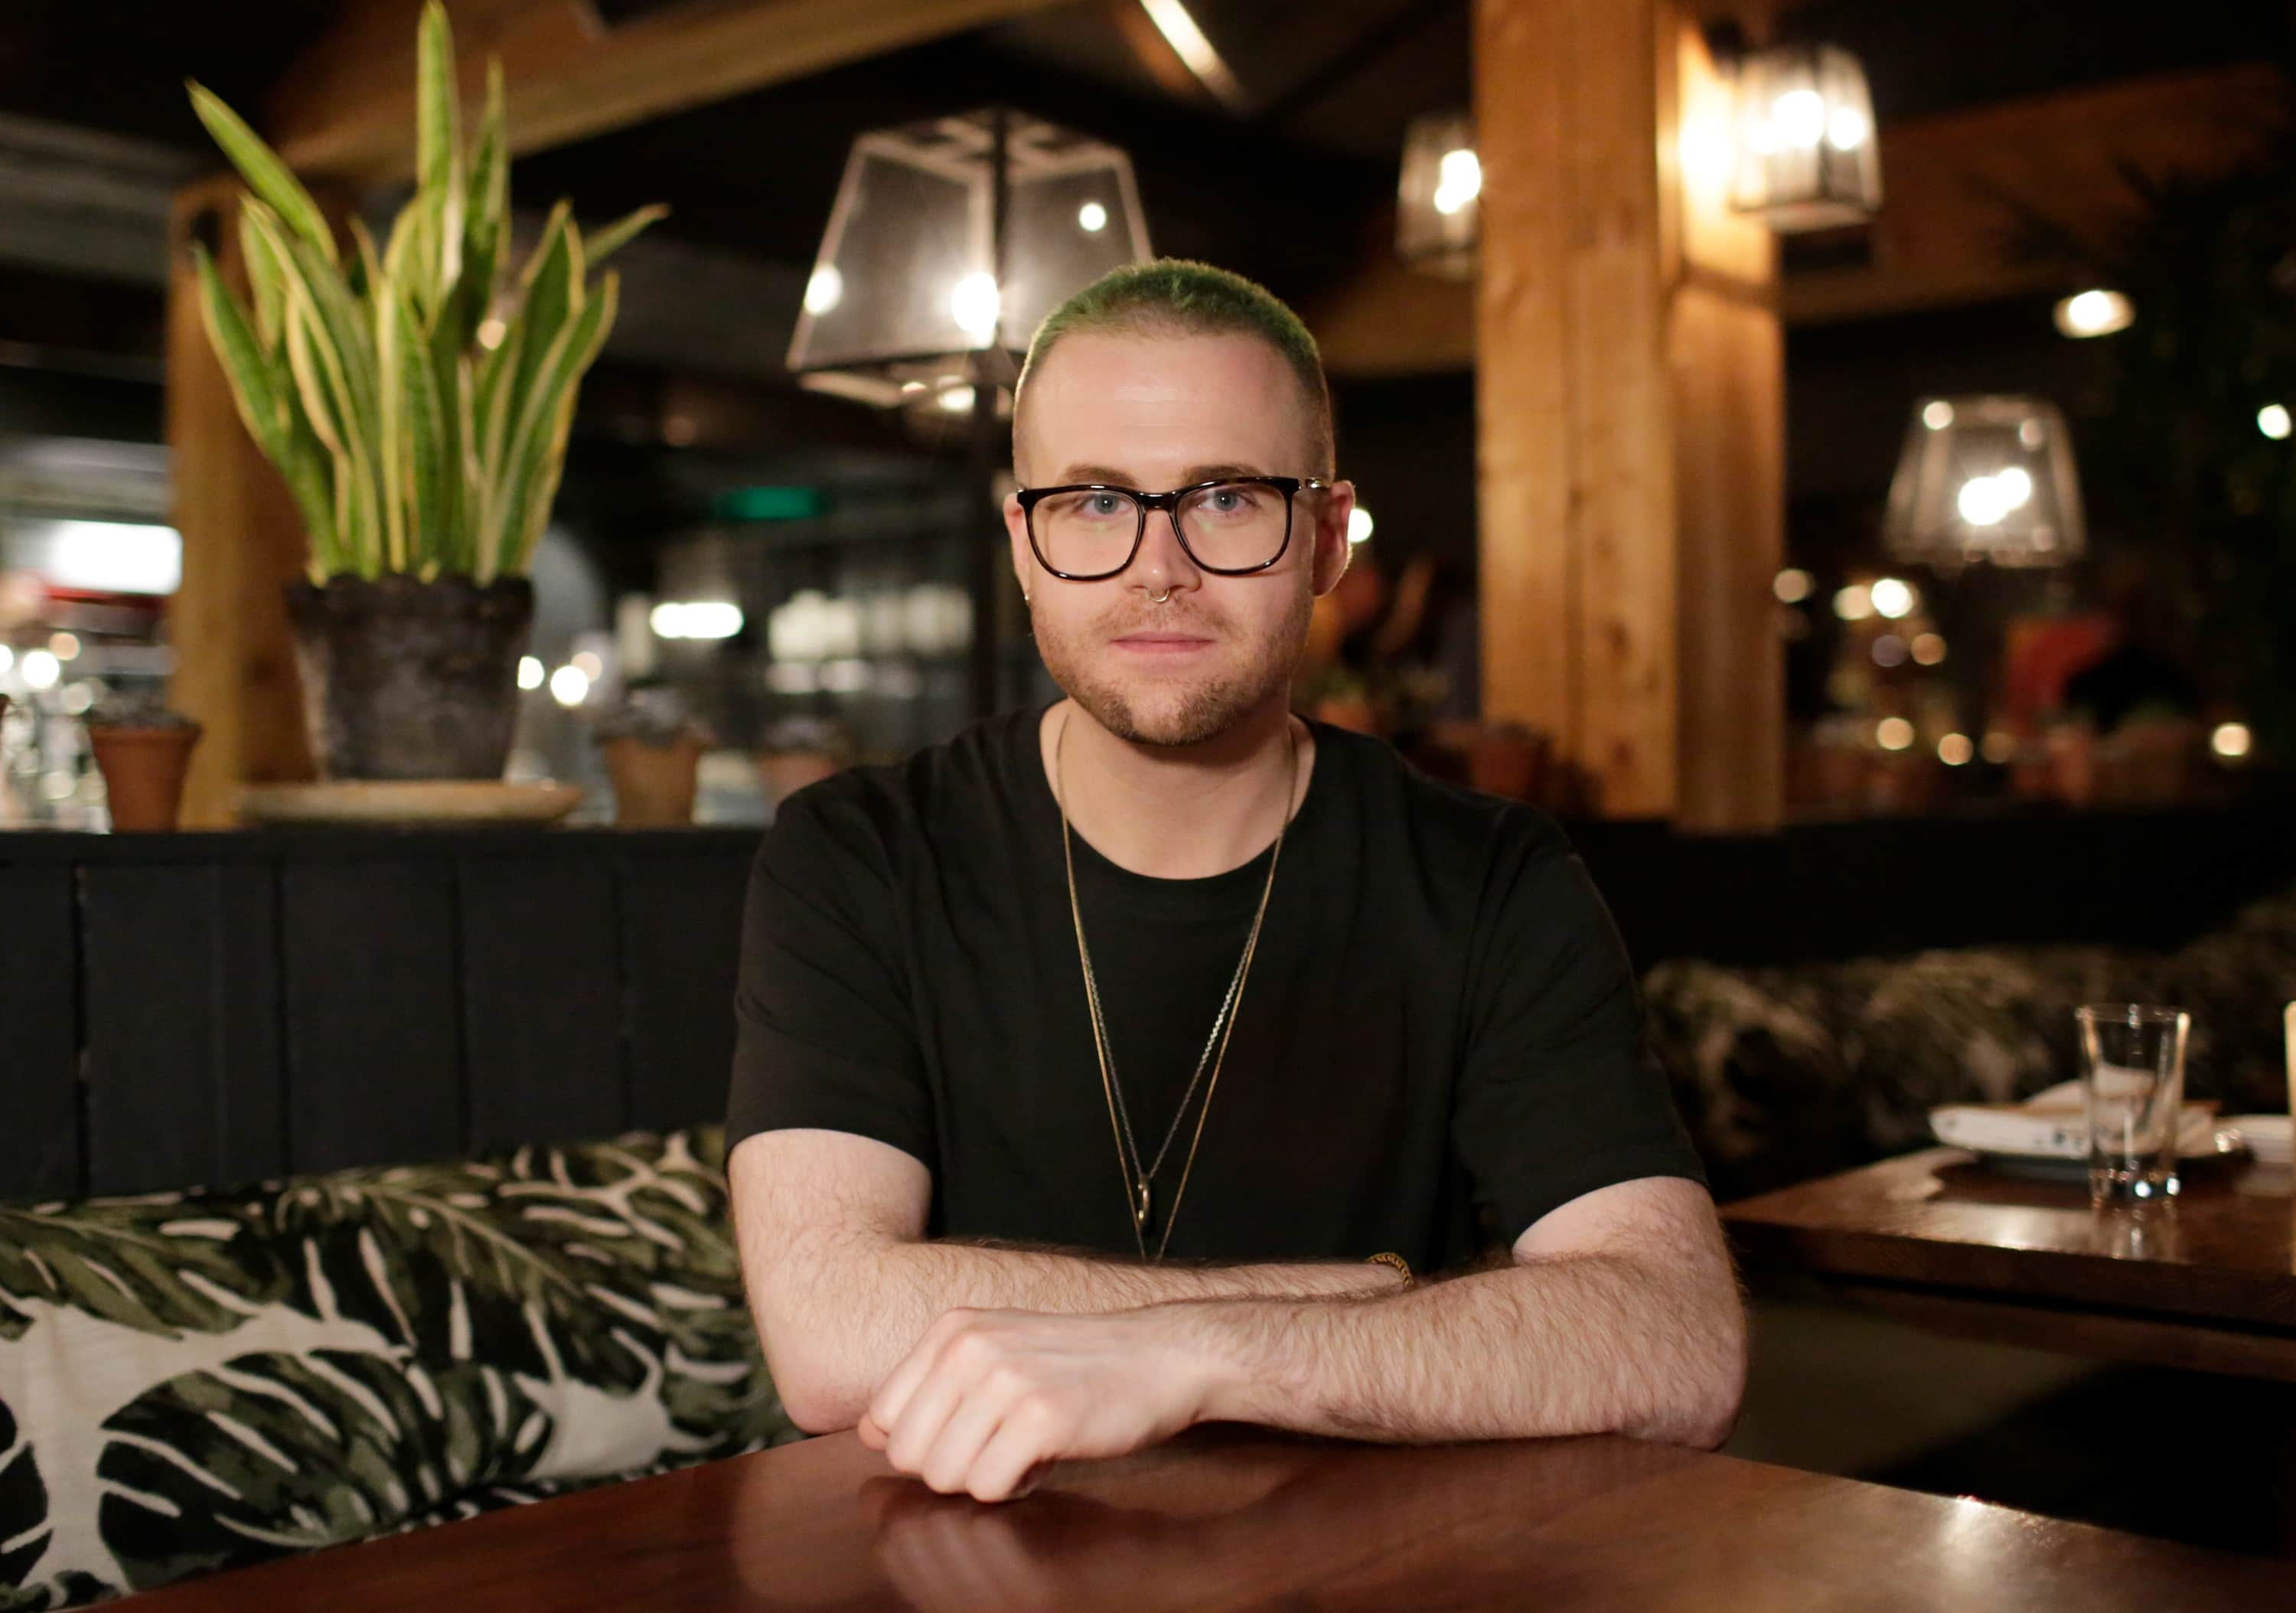 OXFORDSHIRE, ENGLAND - NOVEMBER 29: Christopher Wylie attends the Salons during #BoFVOICES on November 29, 2018 in Oxfordshire, England. (Photo by John Phillips/Getty Images for The Business of Fashion)